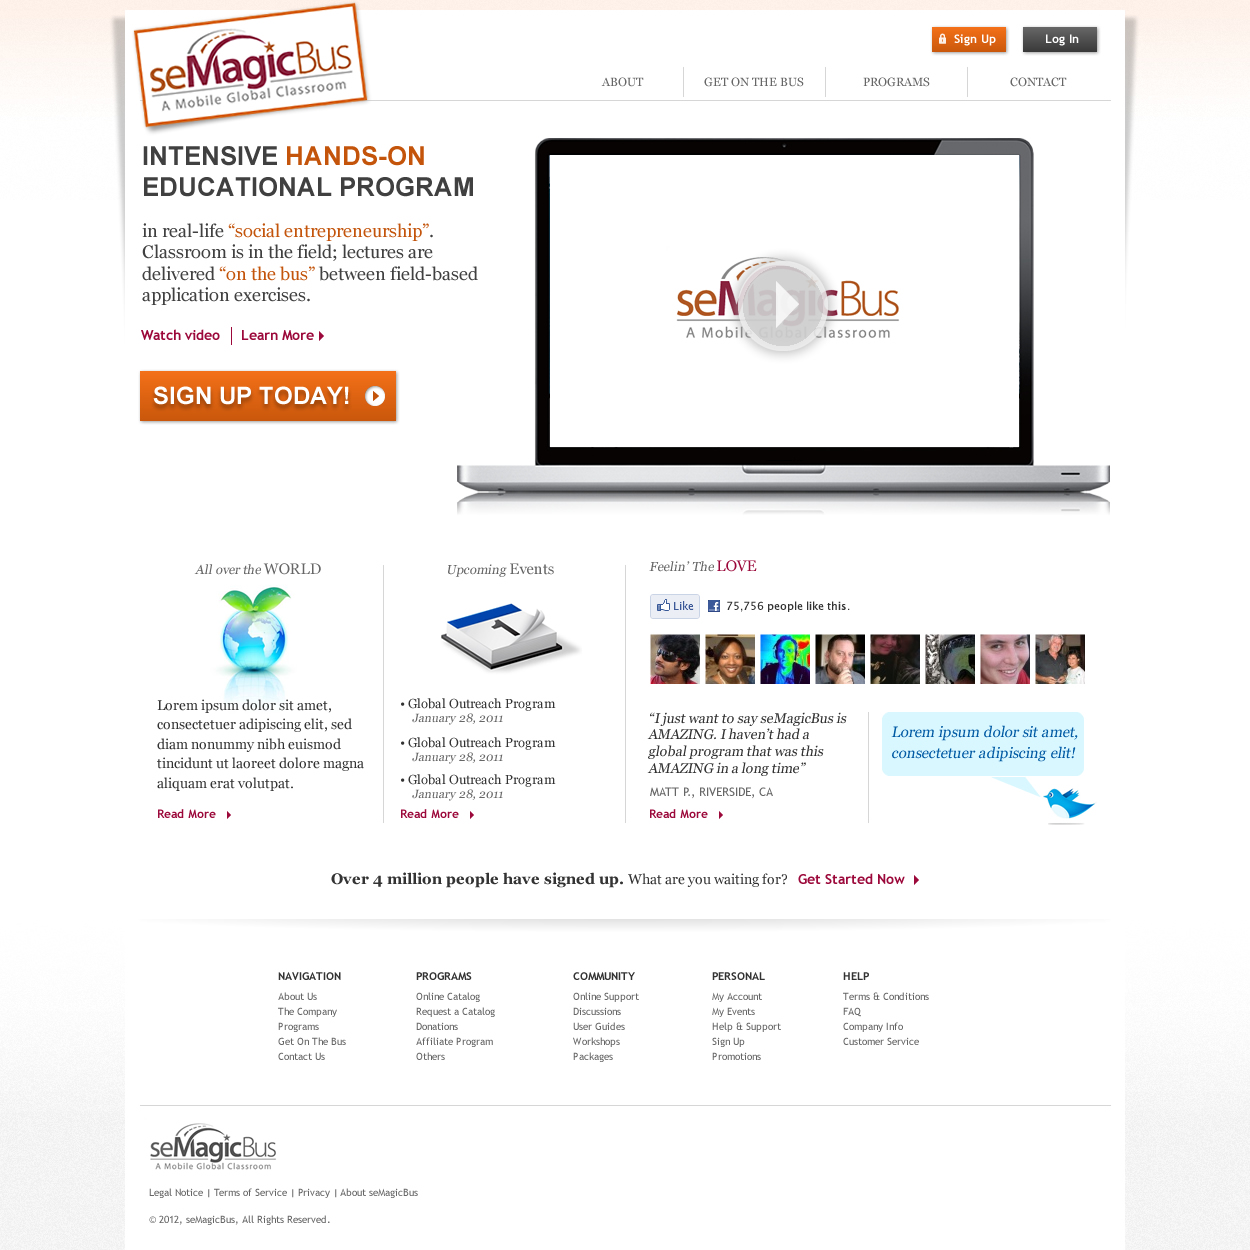 Web Page Design by johngabriel - Entry No. 19 in the Web Page Design Contest seMagicBus Website.